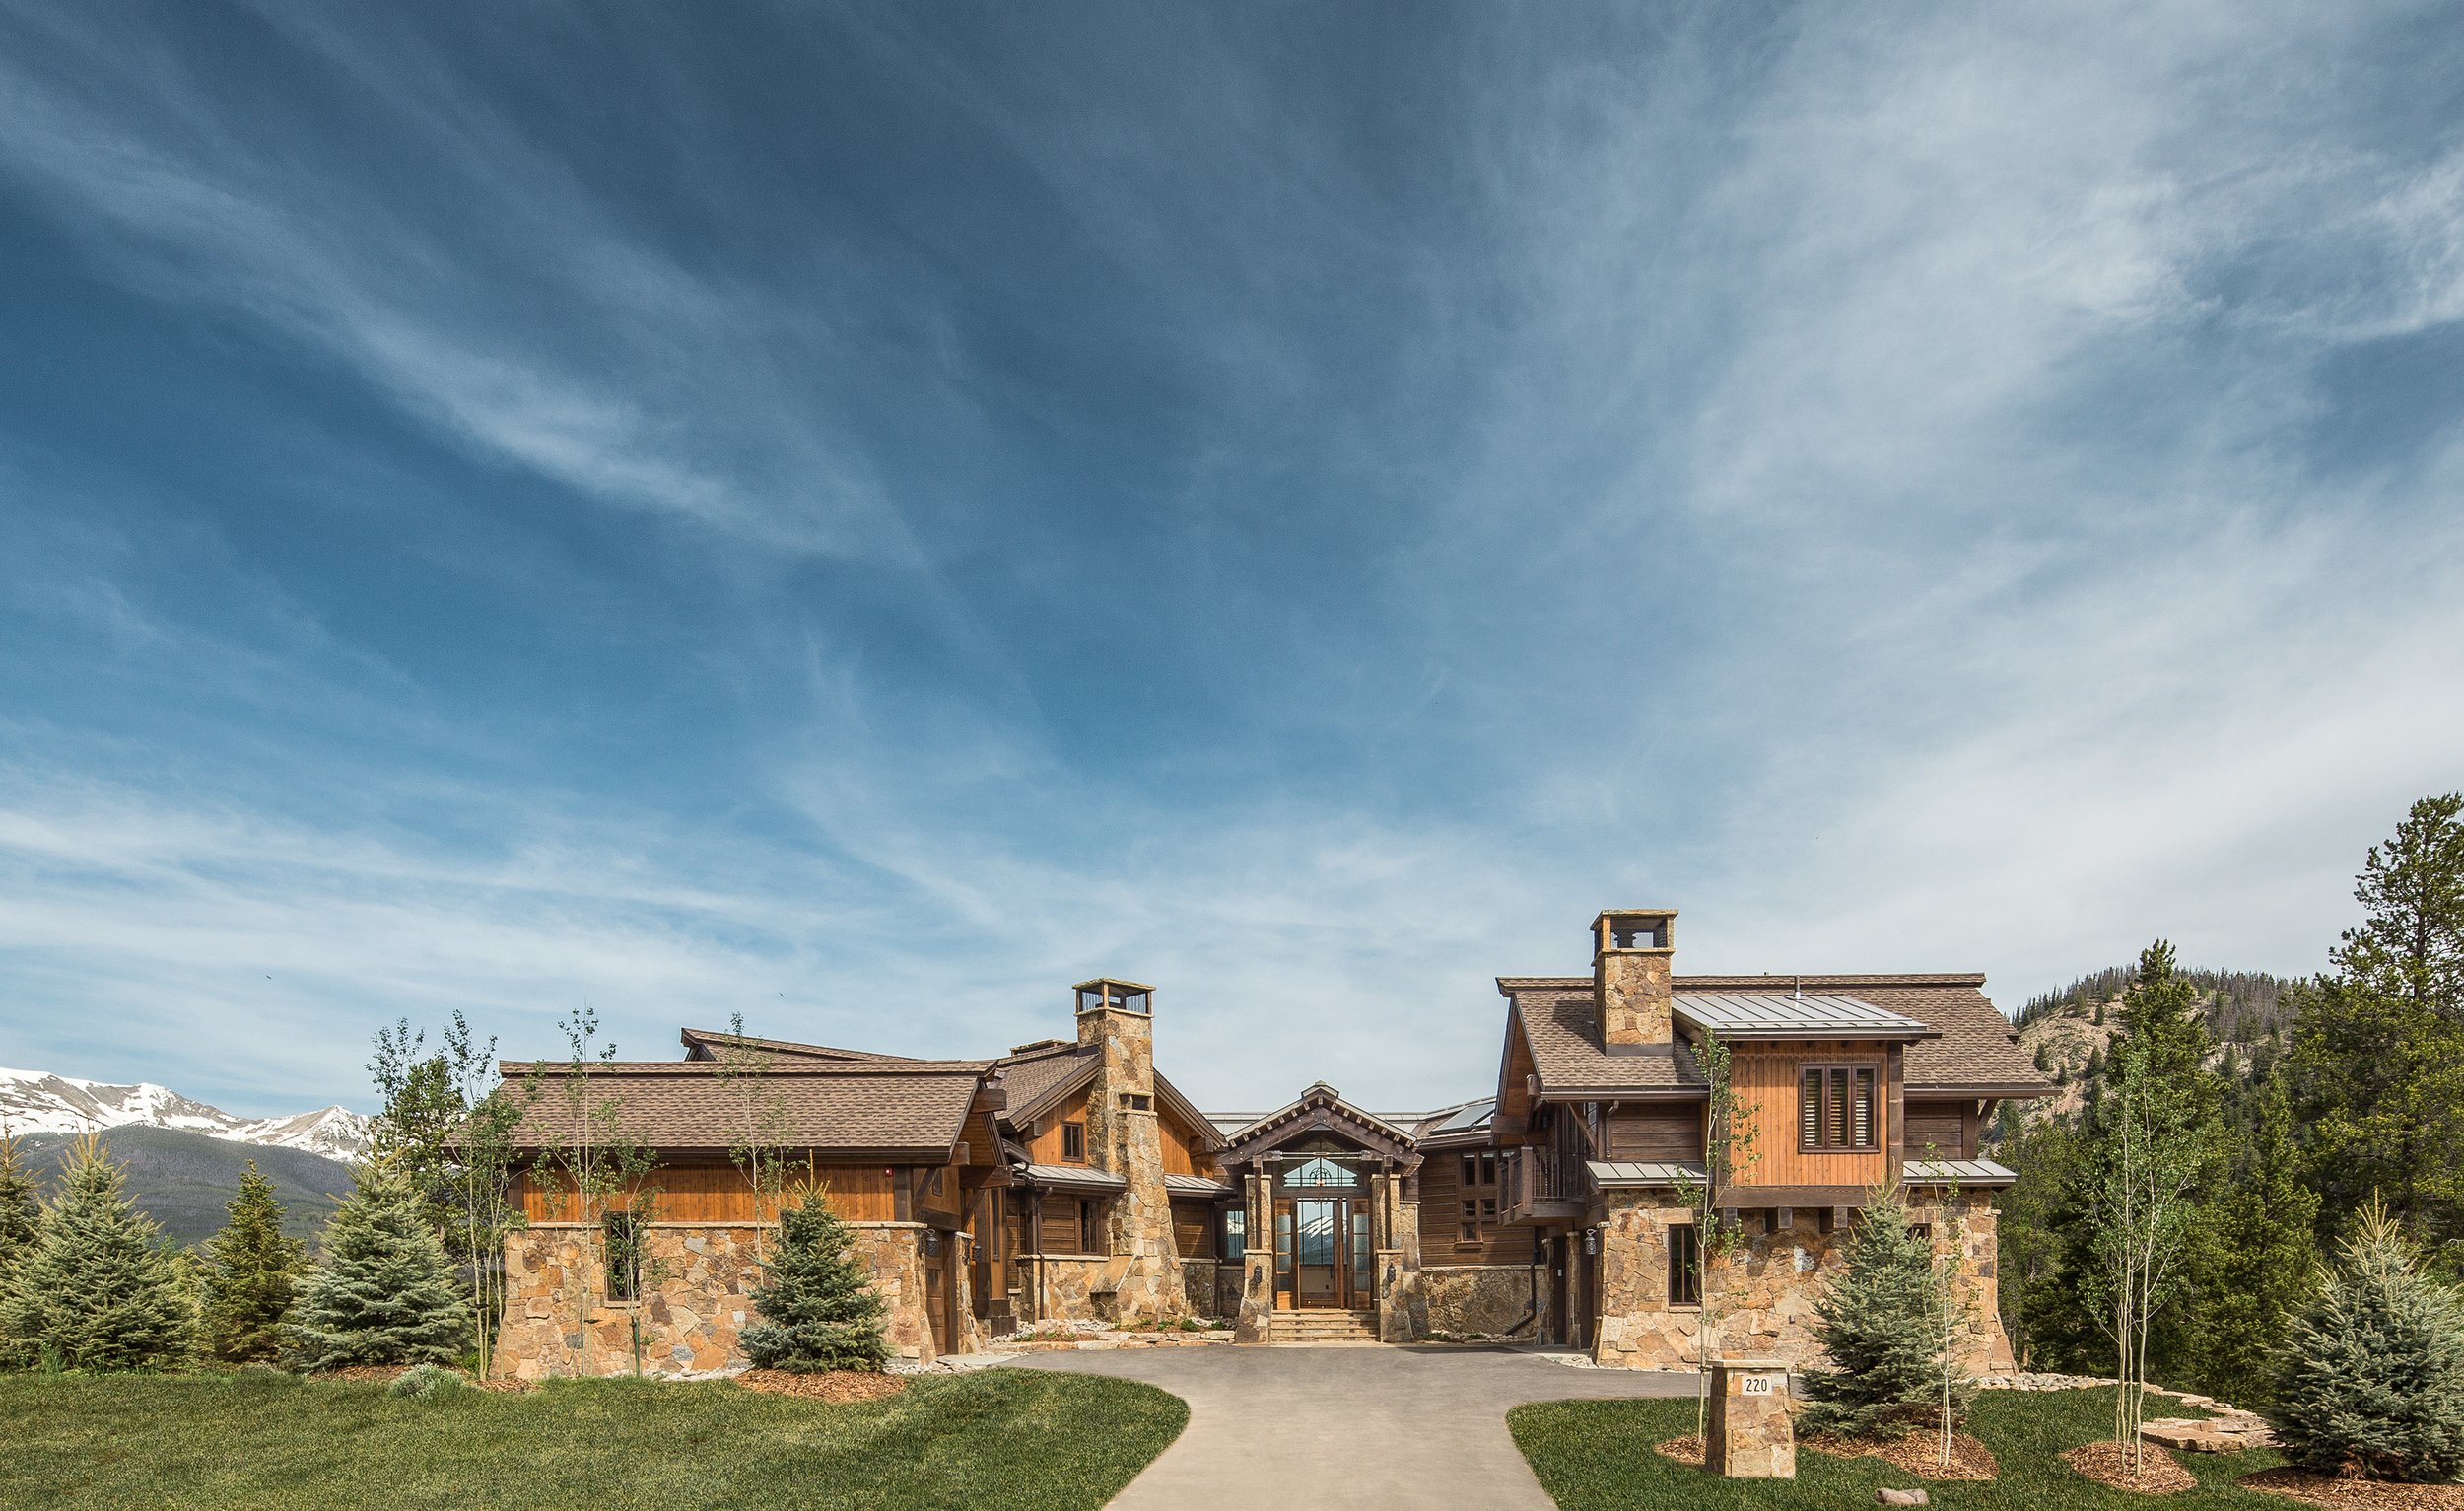 Located in the Highlands neighborhood at220 Cottonwood Circle, this home takes advantage of sweeping views of the Ten Mile Range, unobstructed from the entire western side of the home.